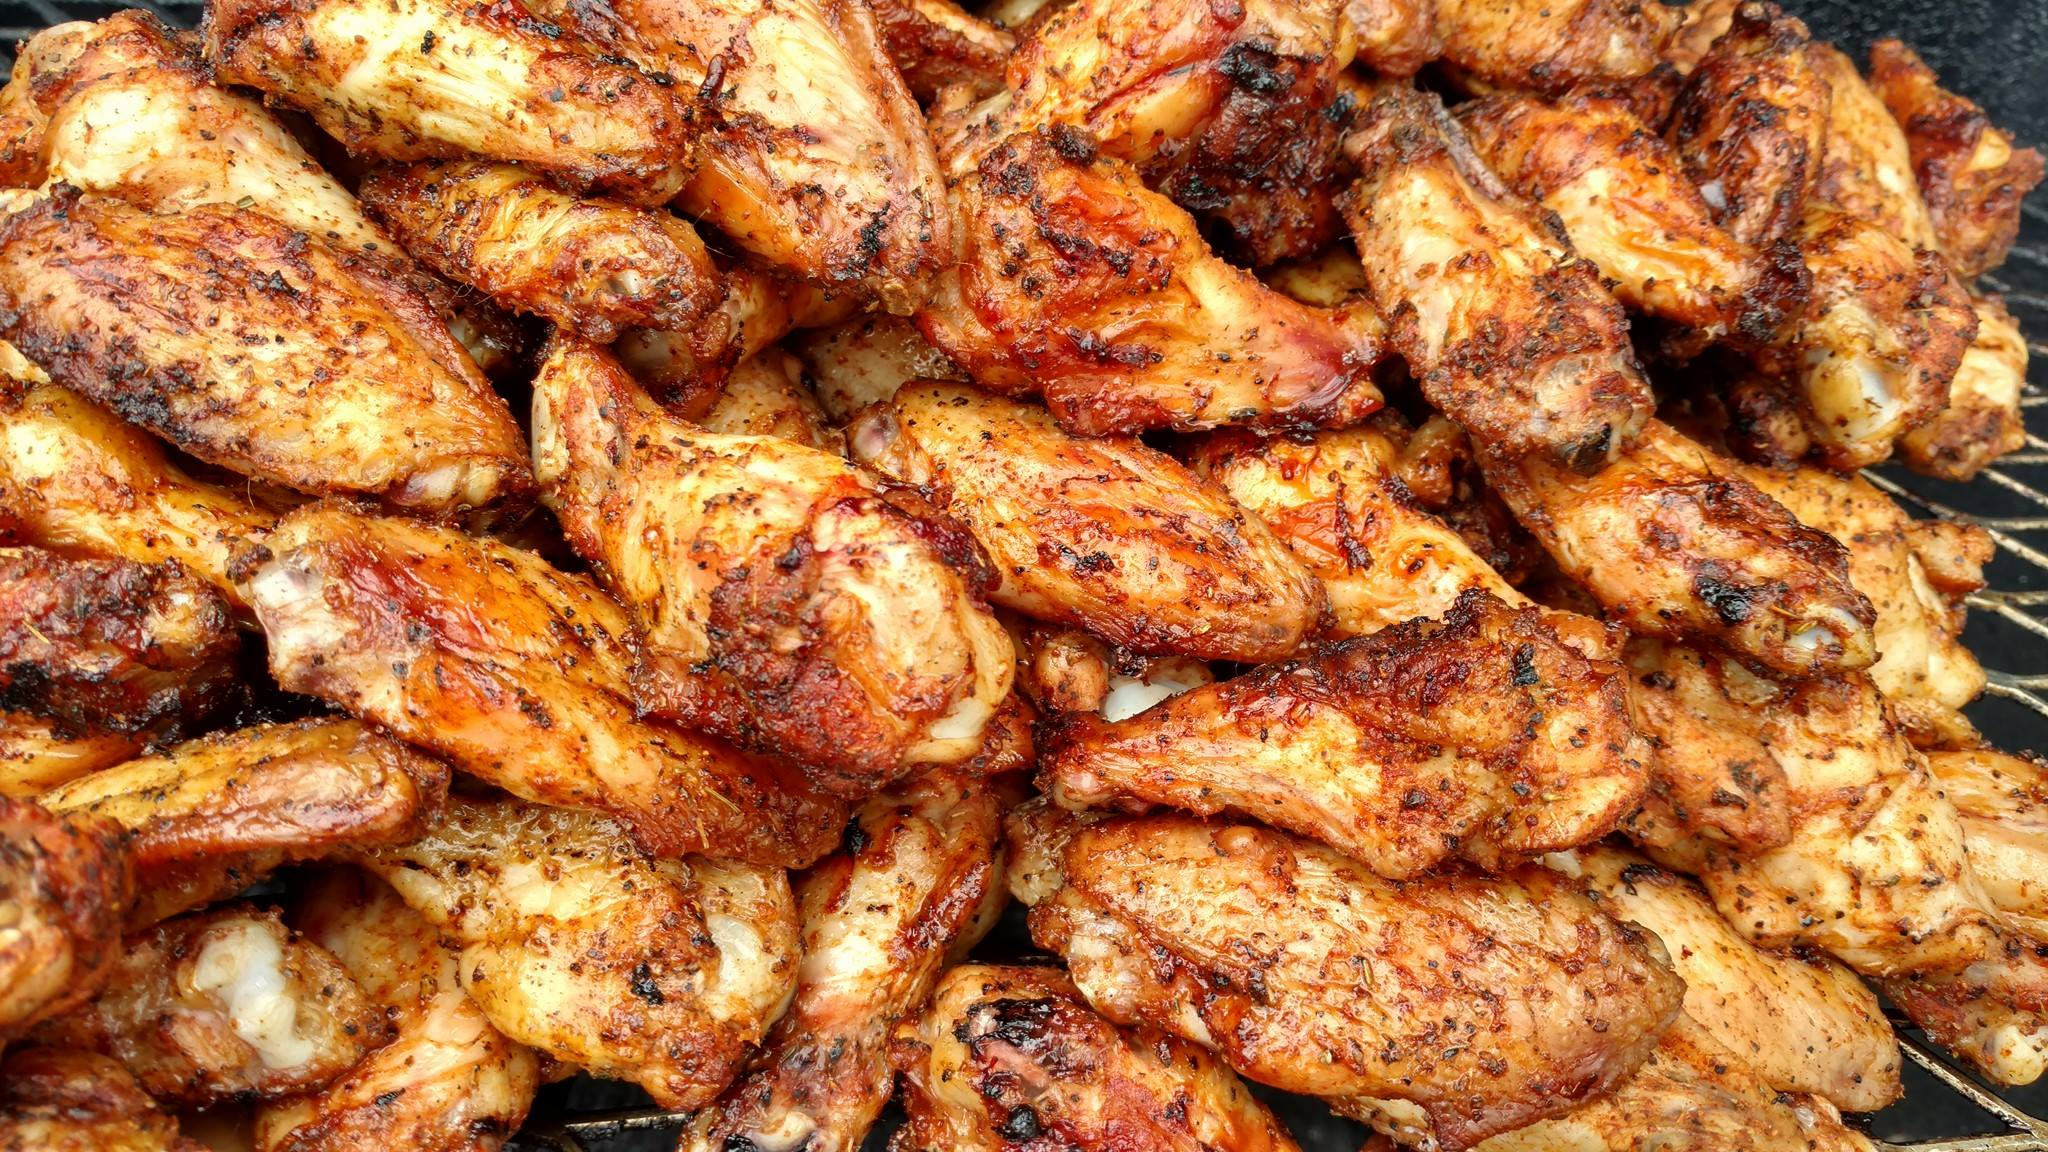 Our wings are cooked over charcoal. Never fried.